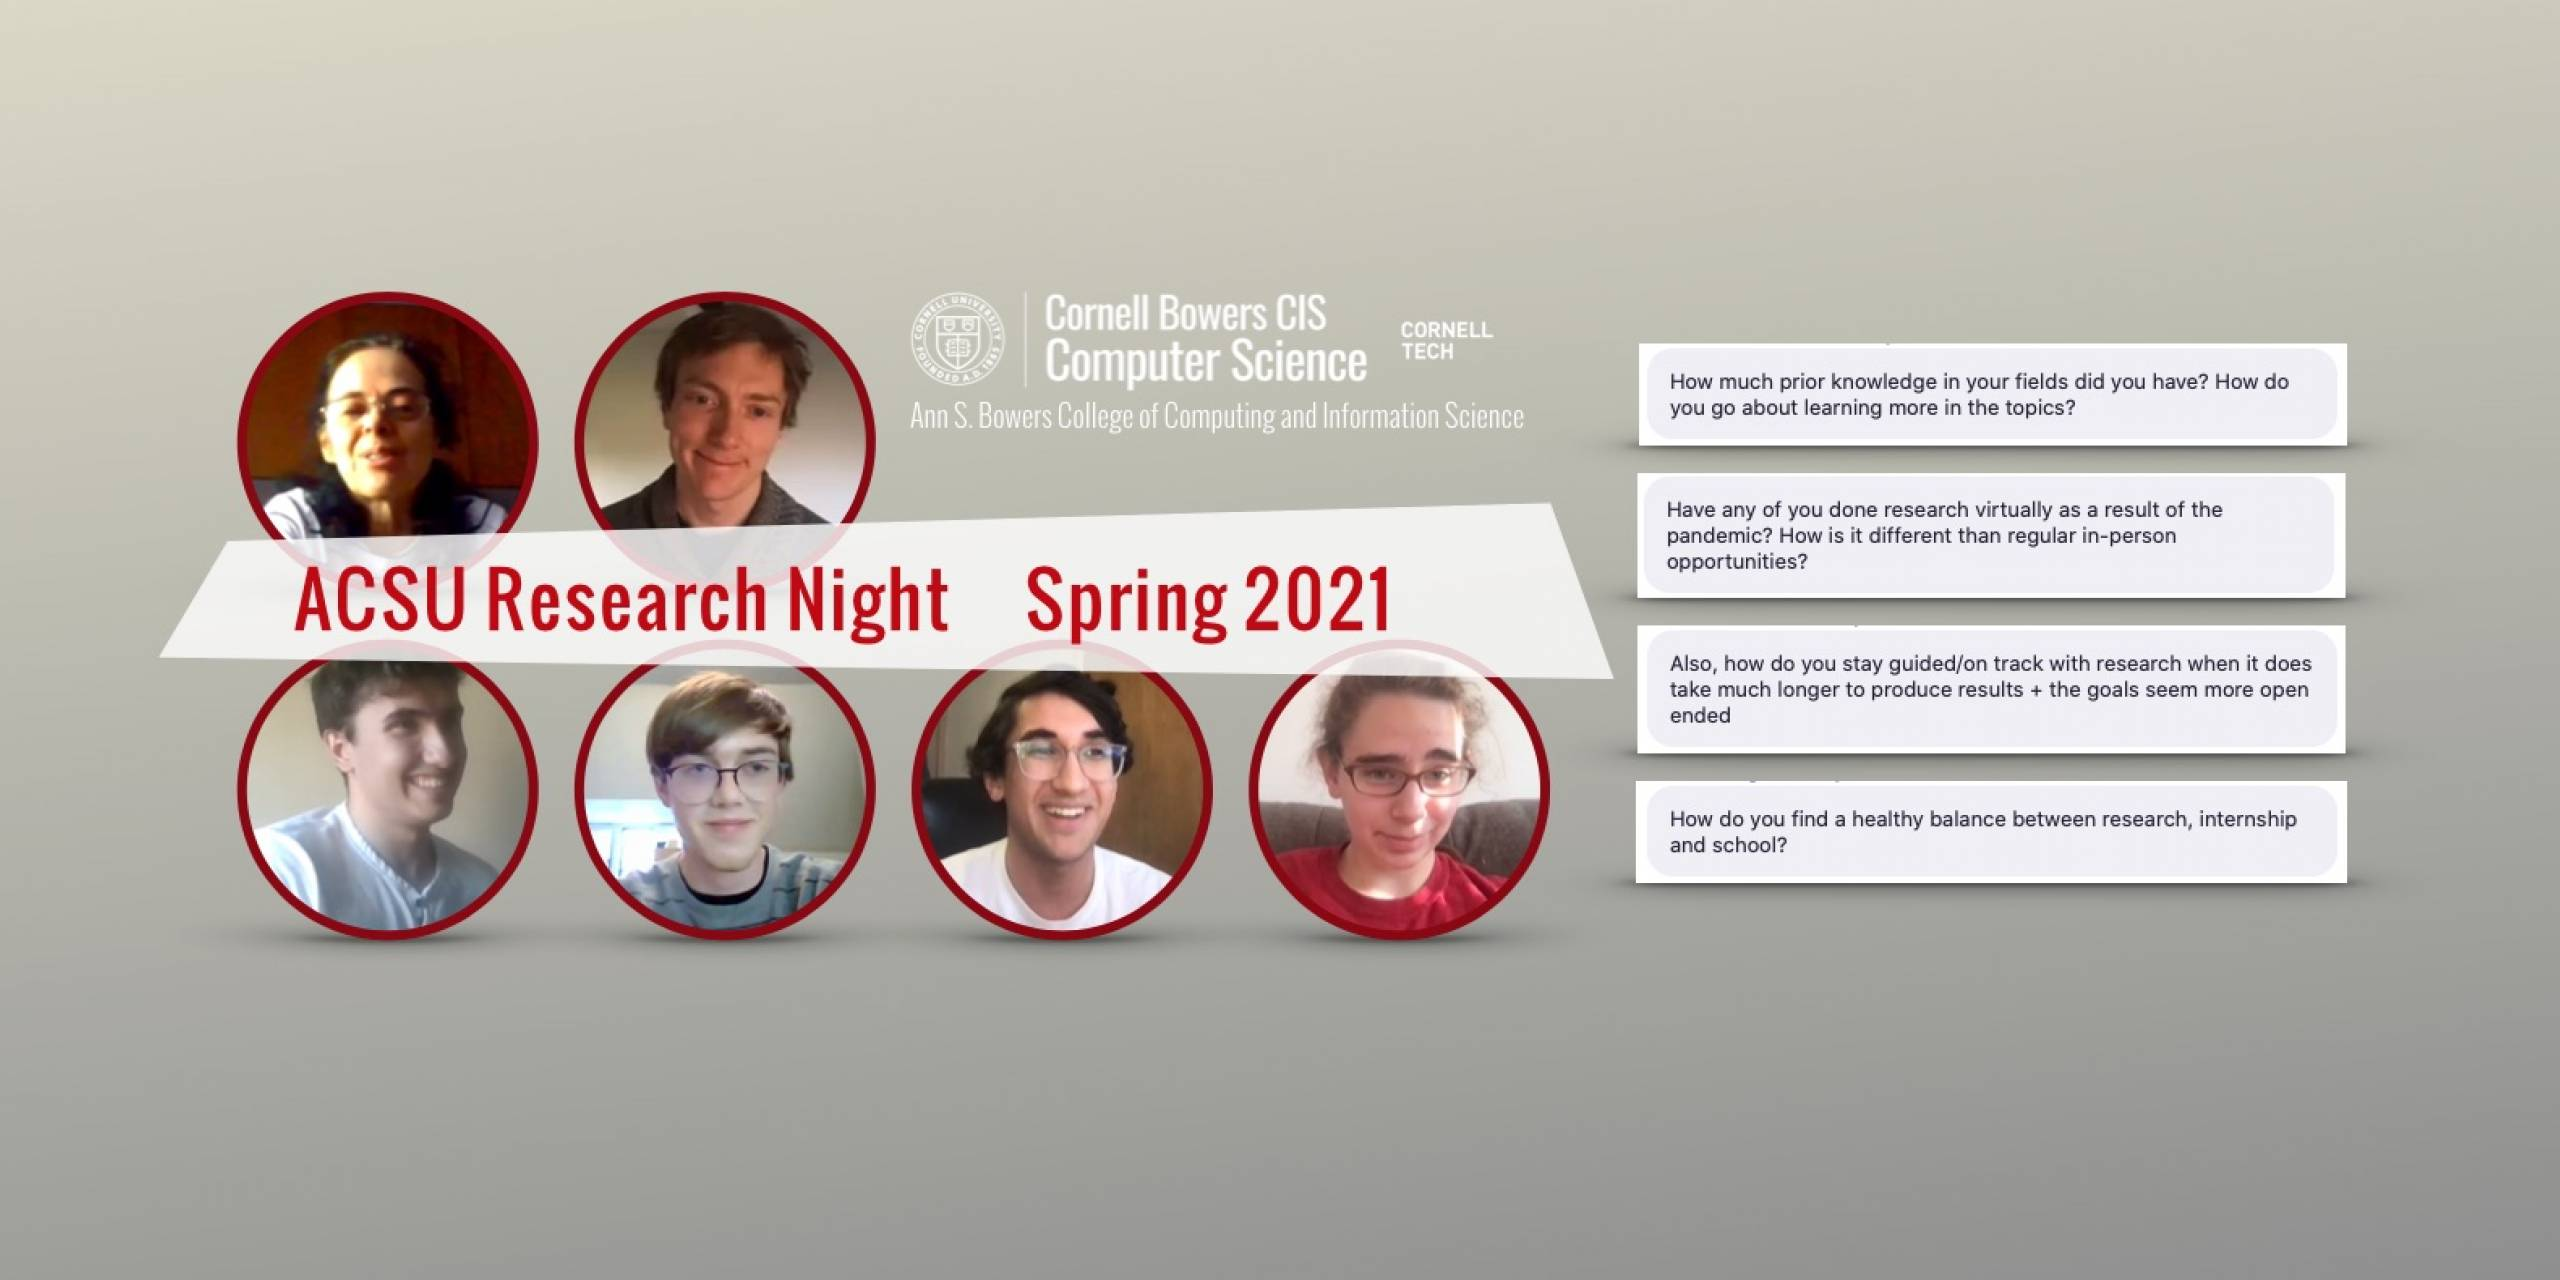 ACSU Research Night — Spring 2021